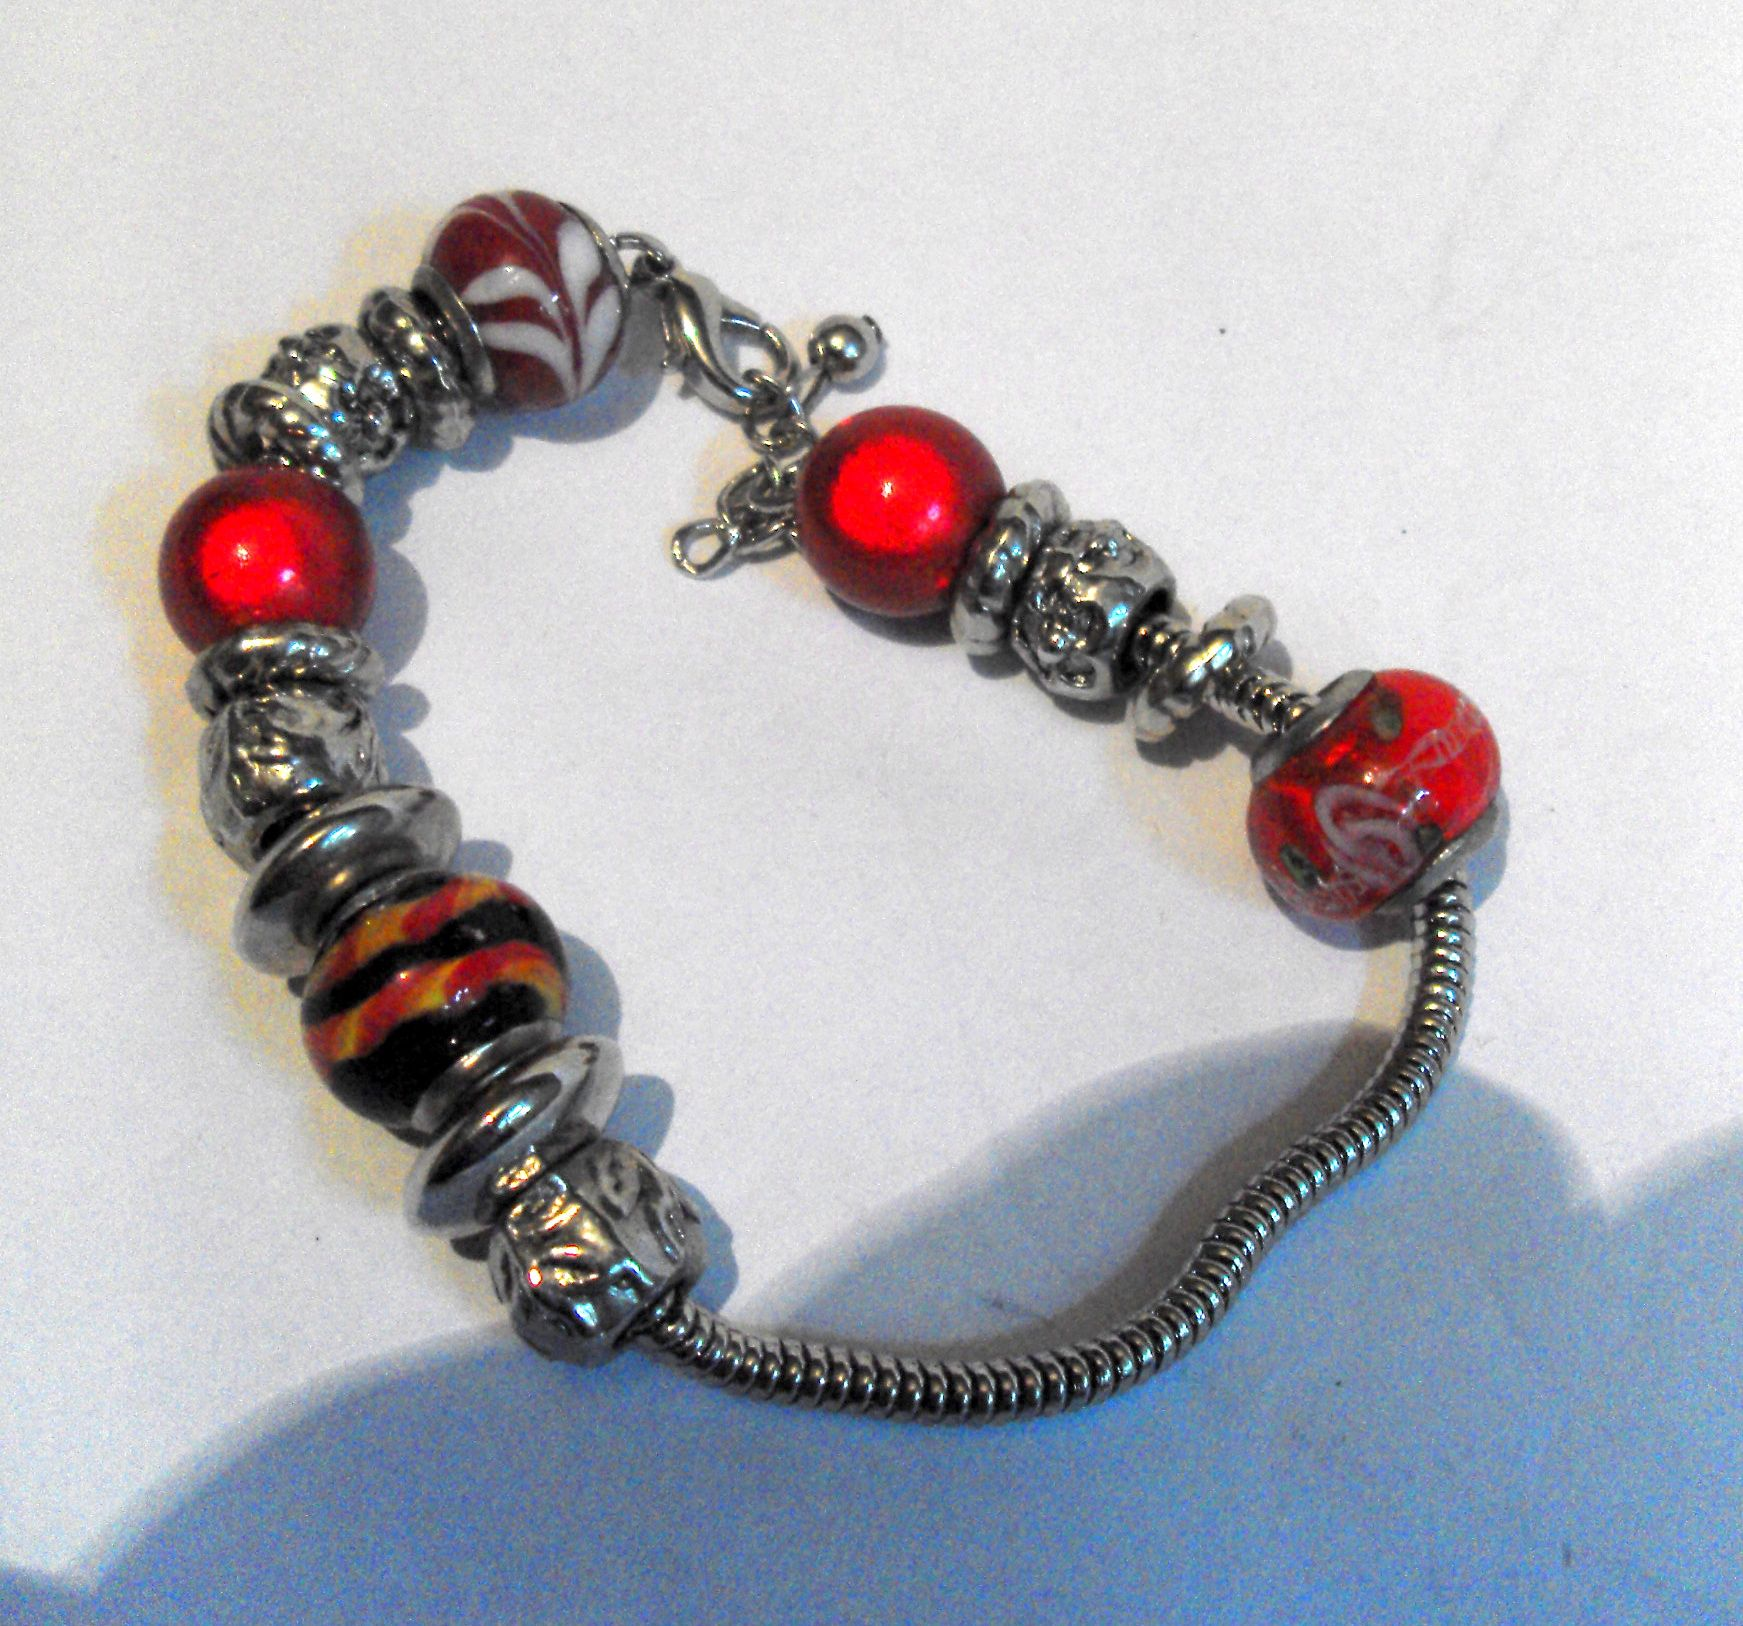 B11242 £15 inc UK Post. Offers welcome. Contemporary multi type (primarily red tones) metal and glass bead bracelet on silver tone snake link chain with claw catch. The bracelet and catch are structurally sound. The bracelet measures approximately 9in long, including catch and extension. Weighs about 29g.